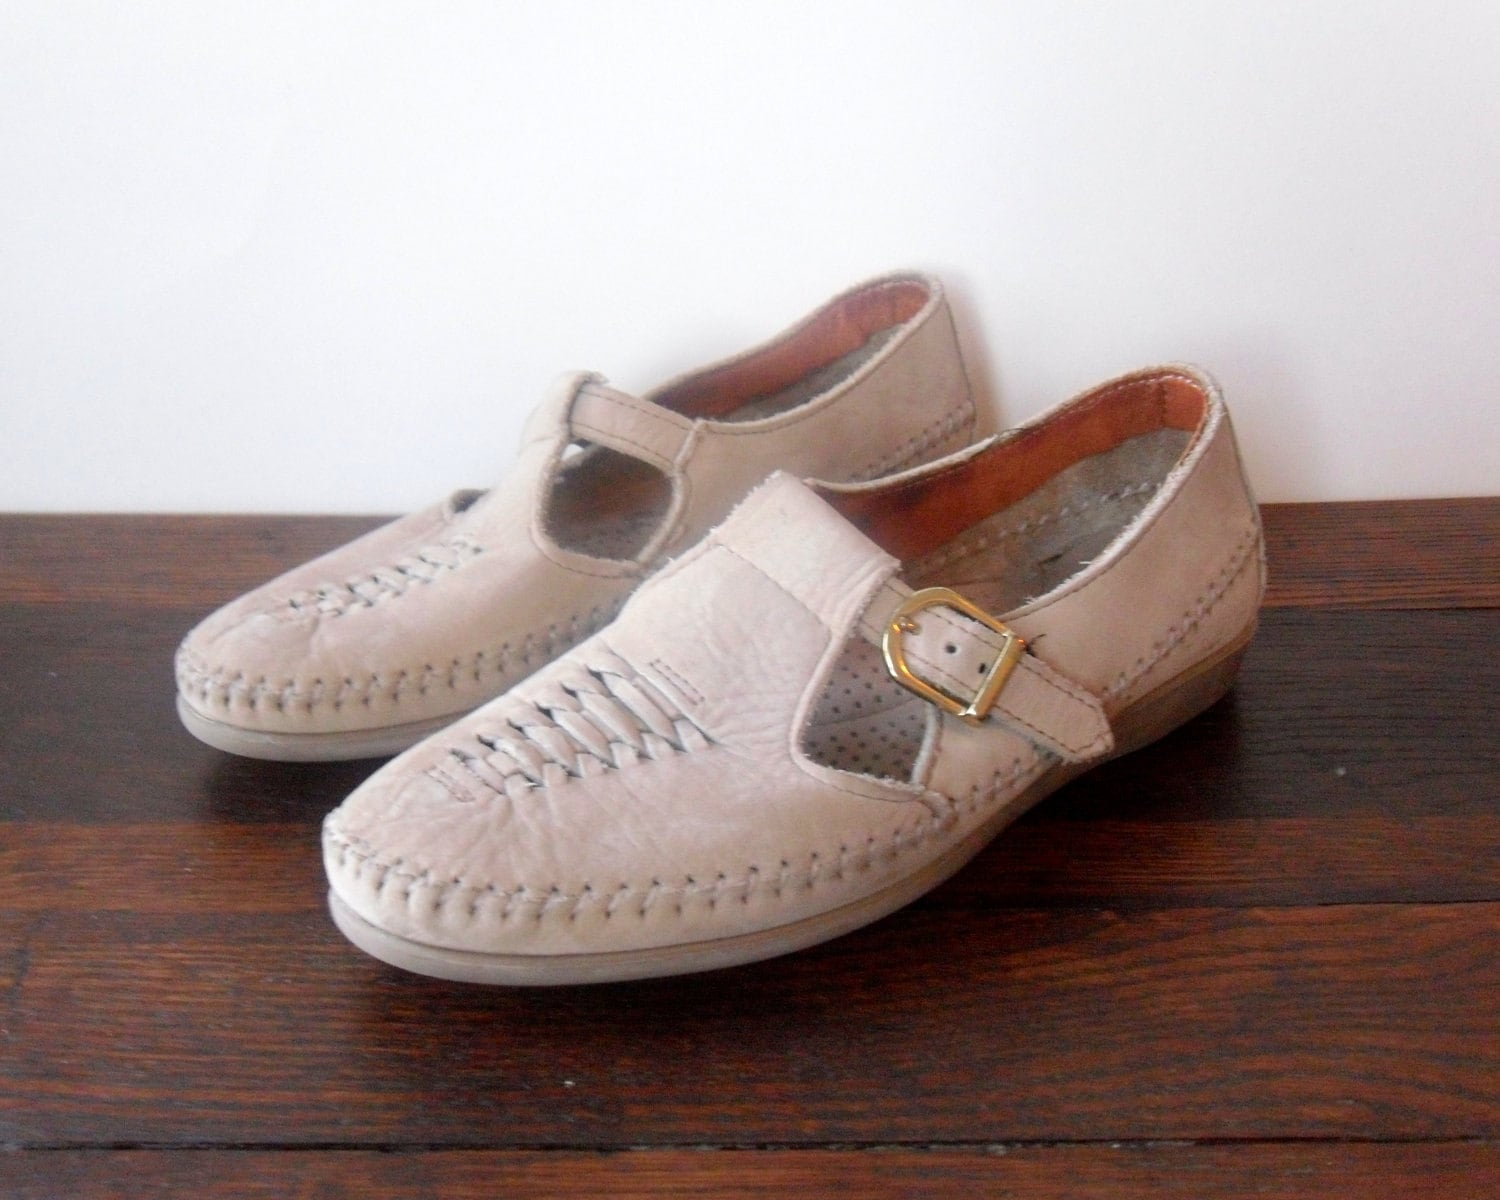 Vintage 80s / Dexter / Shoes 7.5 / Moccasin / Loafers / Vintage shoes